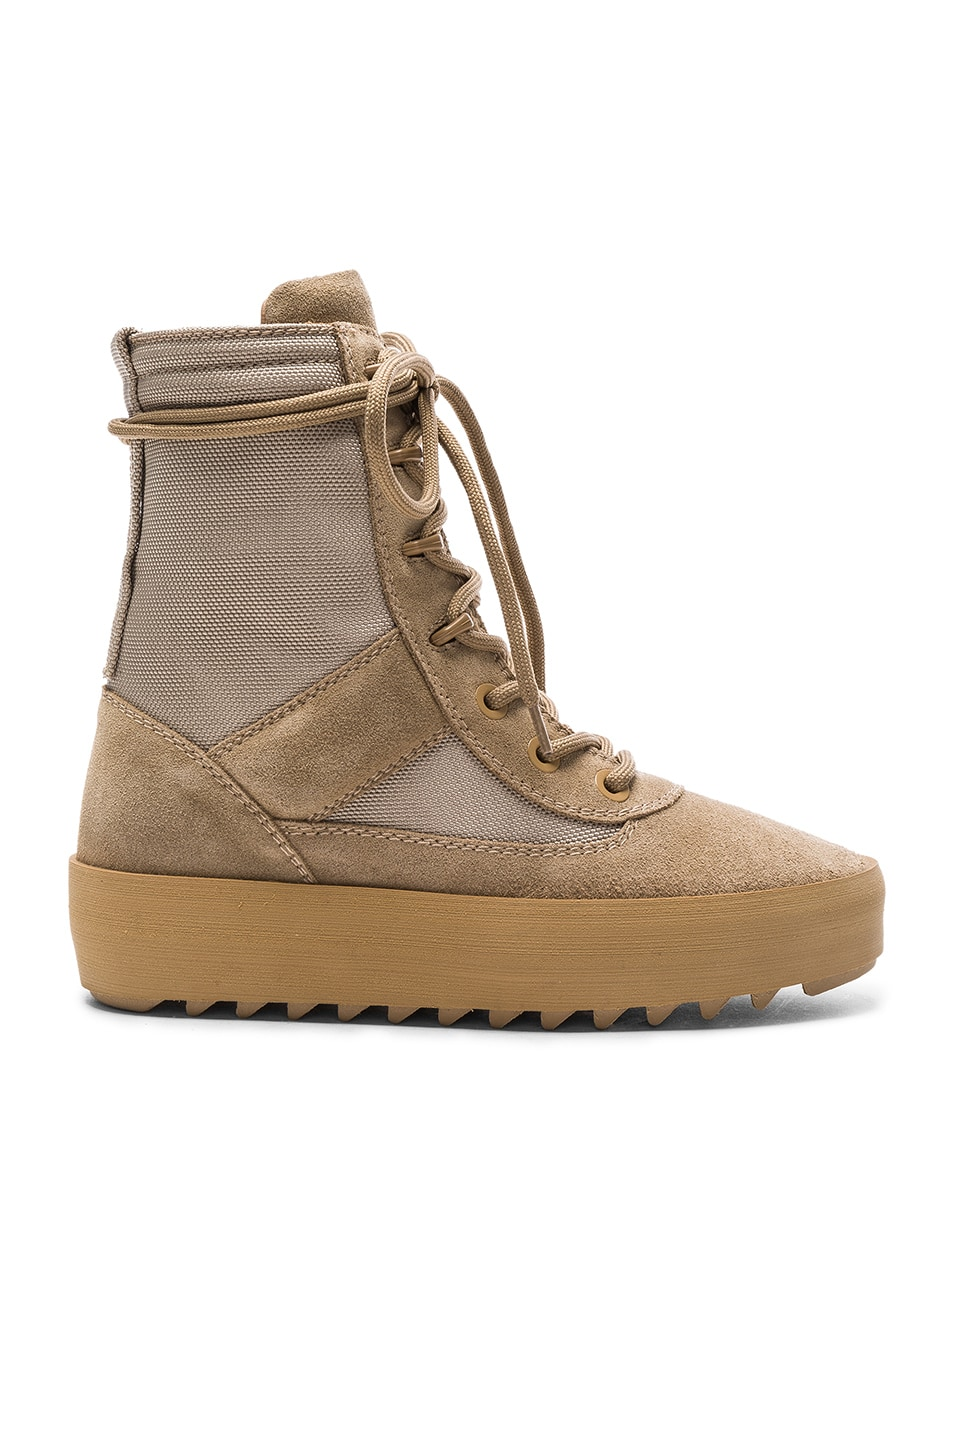 Image 1 of YEEZY Season 3 Military Boots in Rock